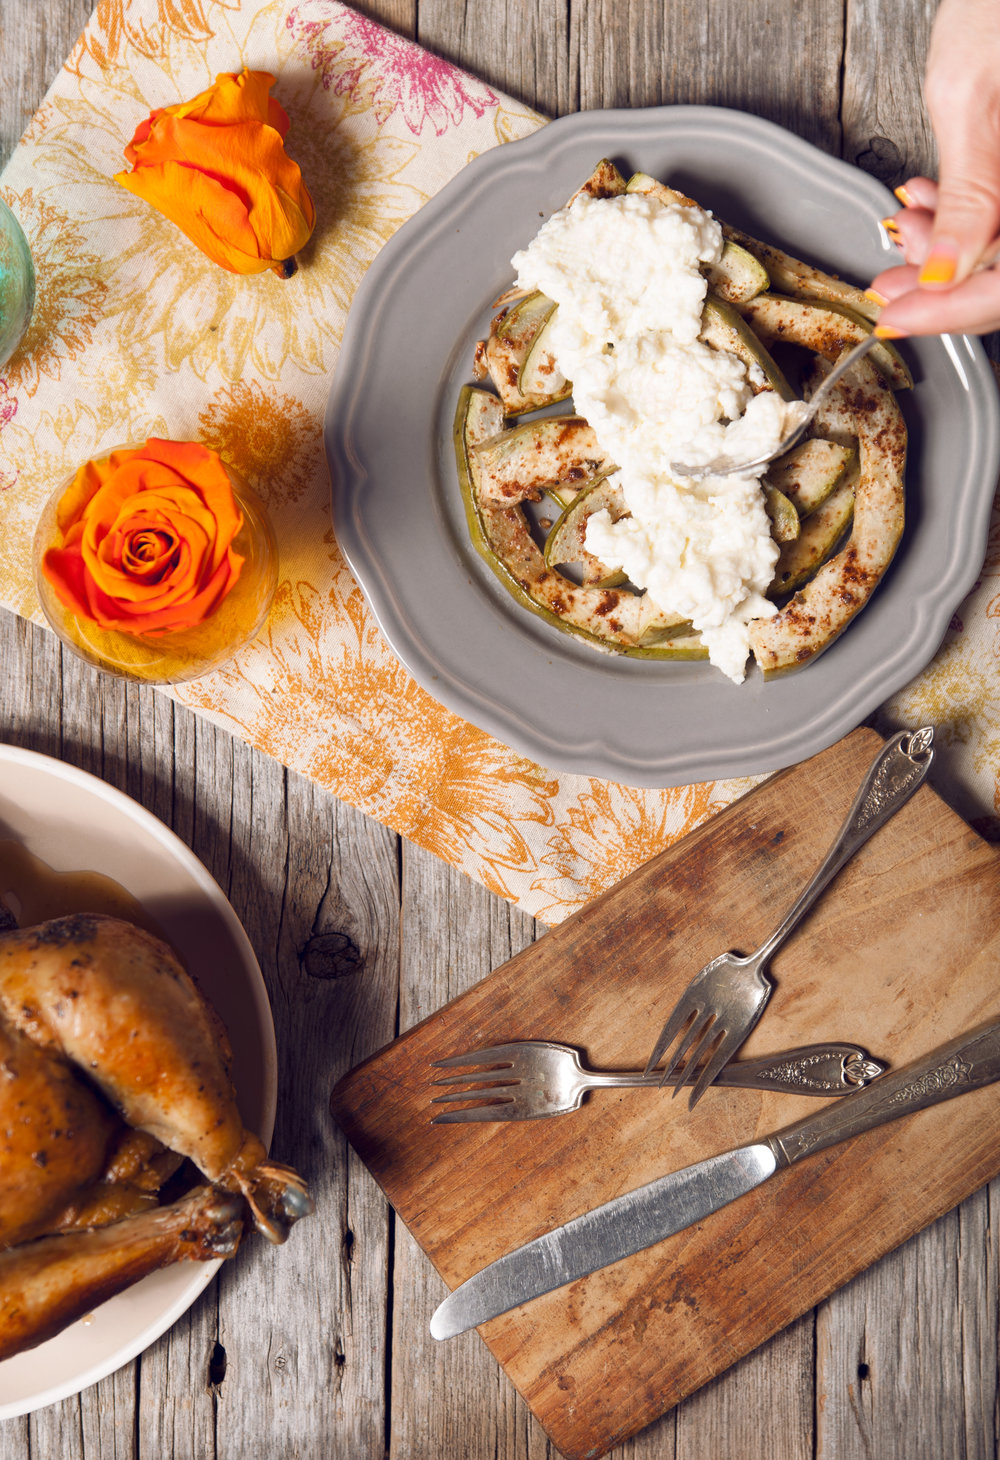 the perfect veggie side for any meal: baked squash + ricotta